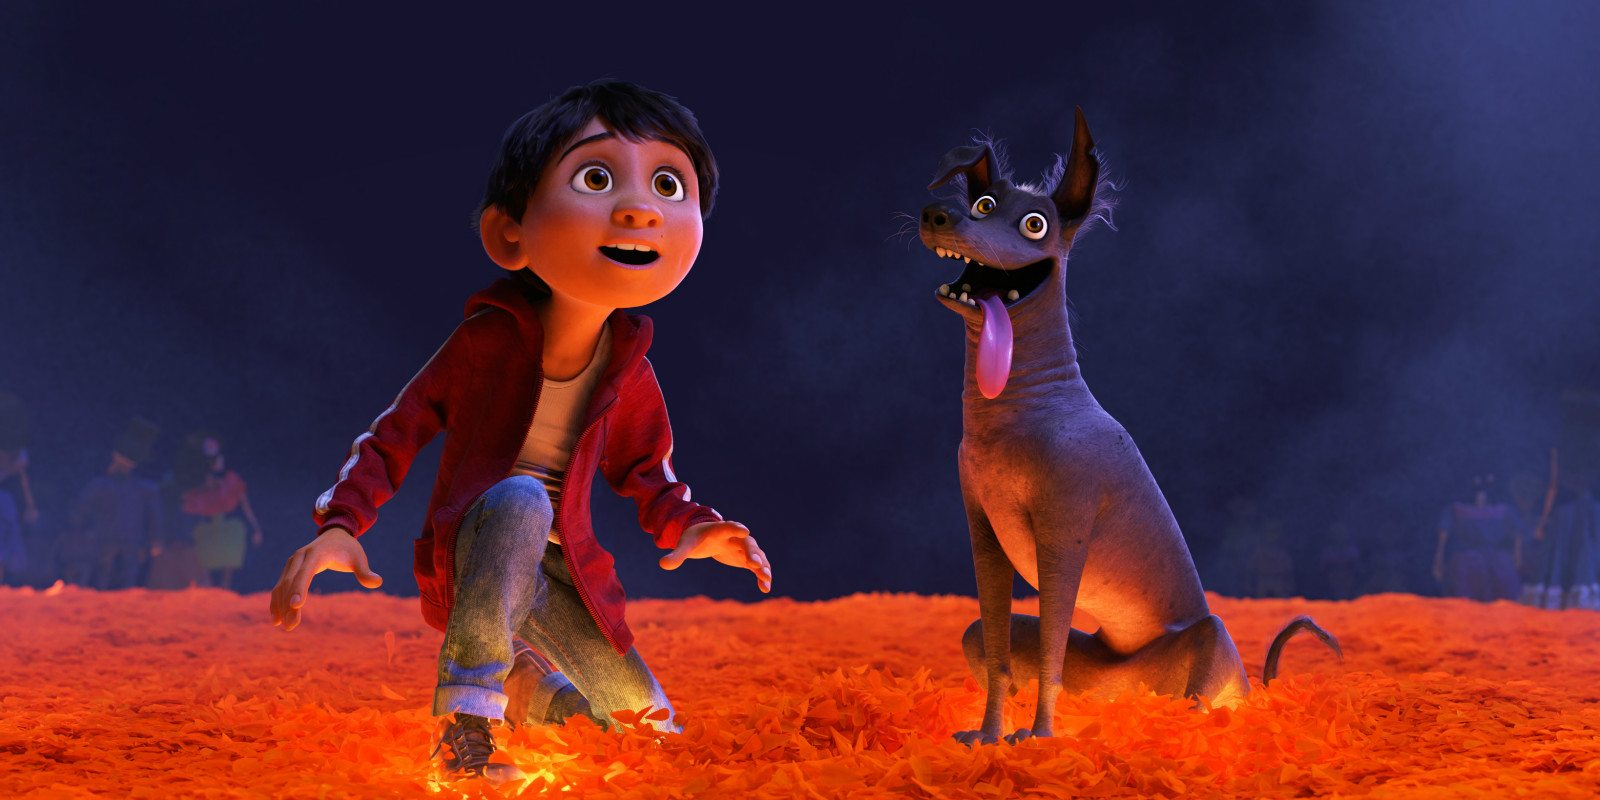 10 Things Parents Should Know About 'Coco'